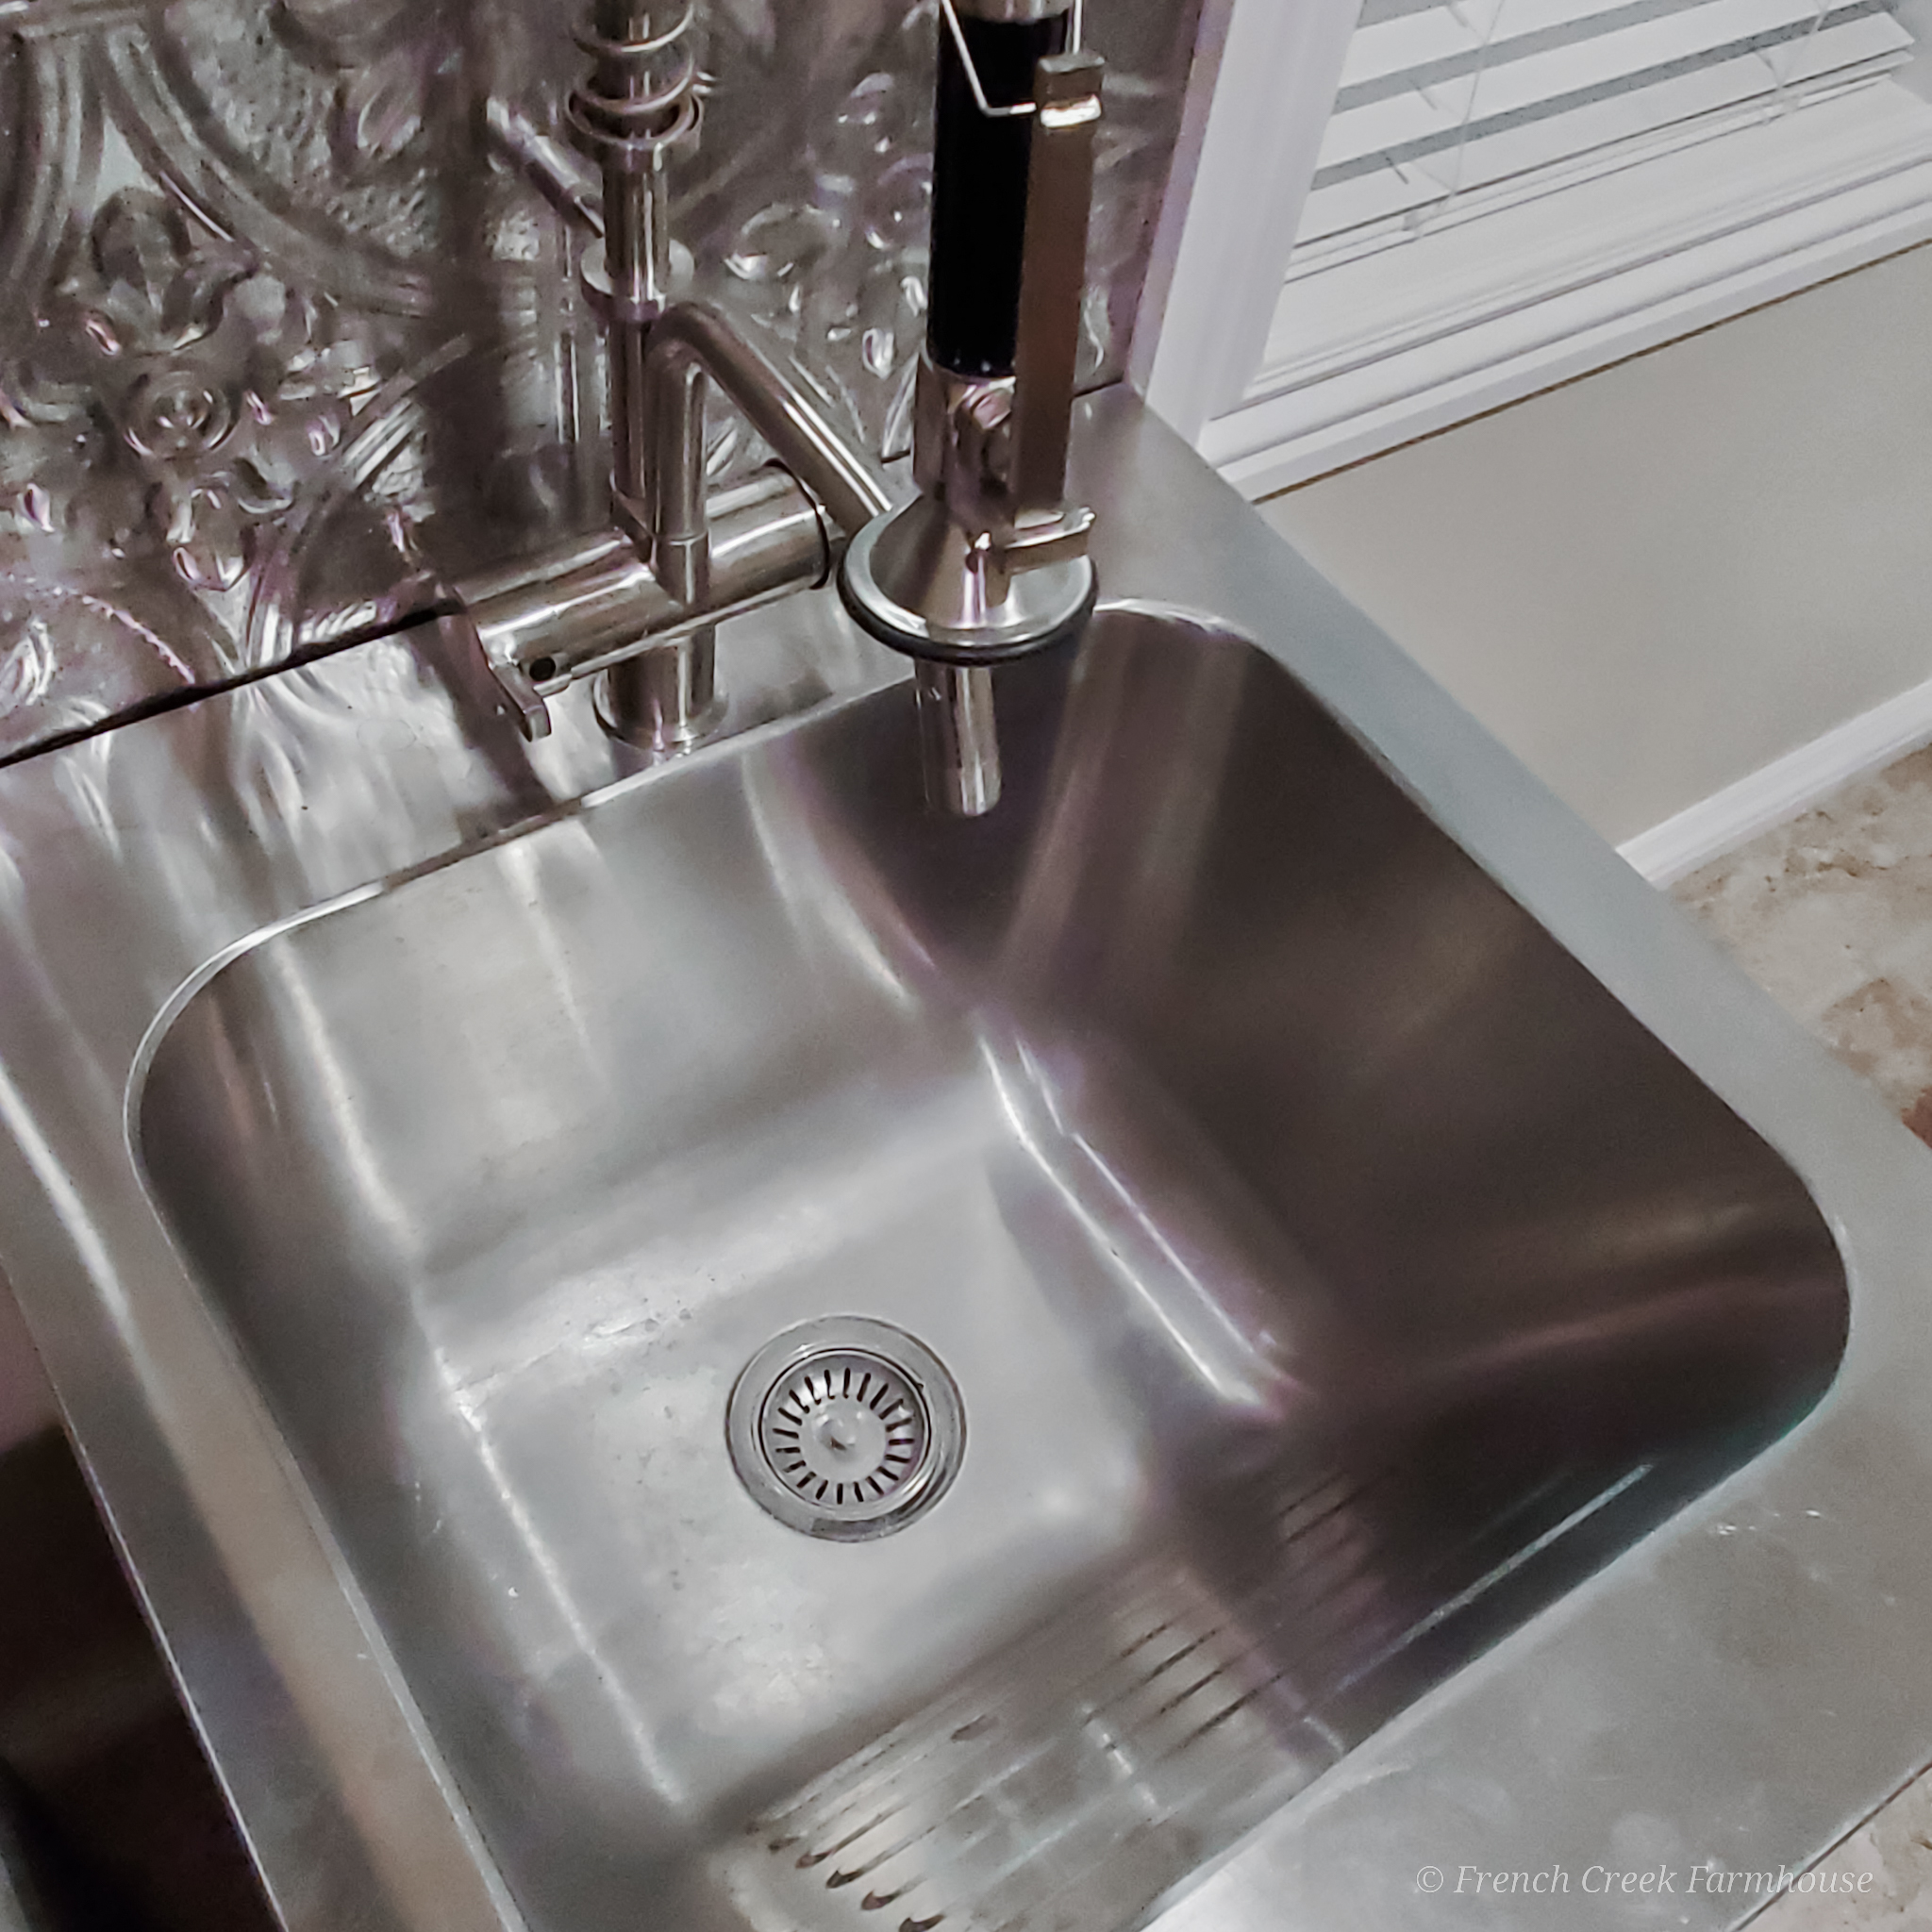 The next step in our renovation is updating the utility sink